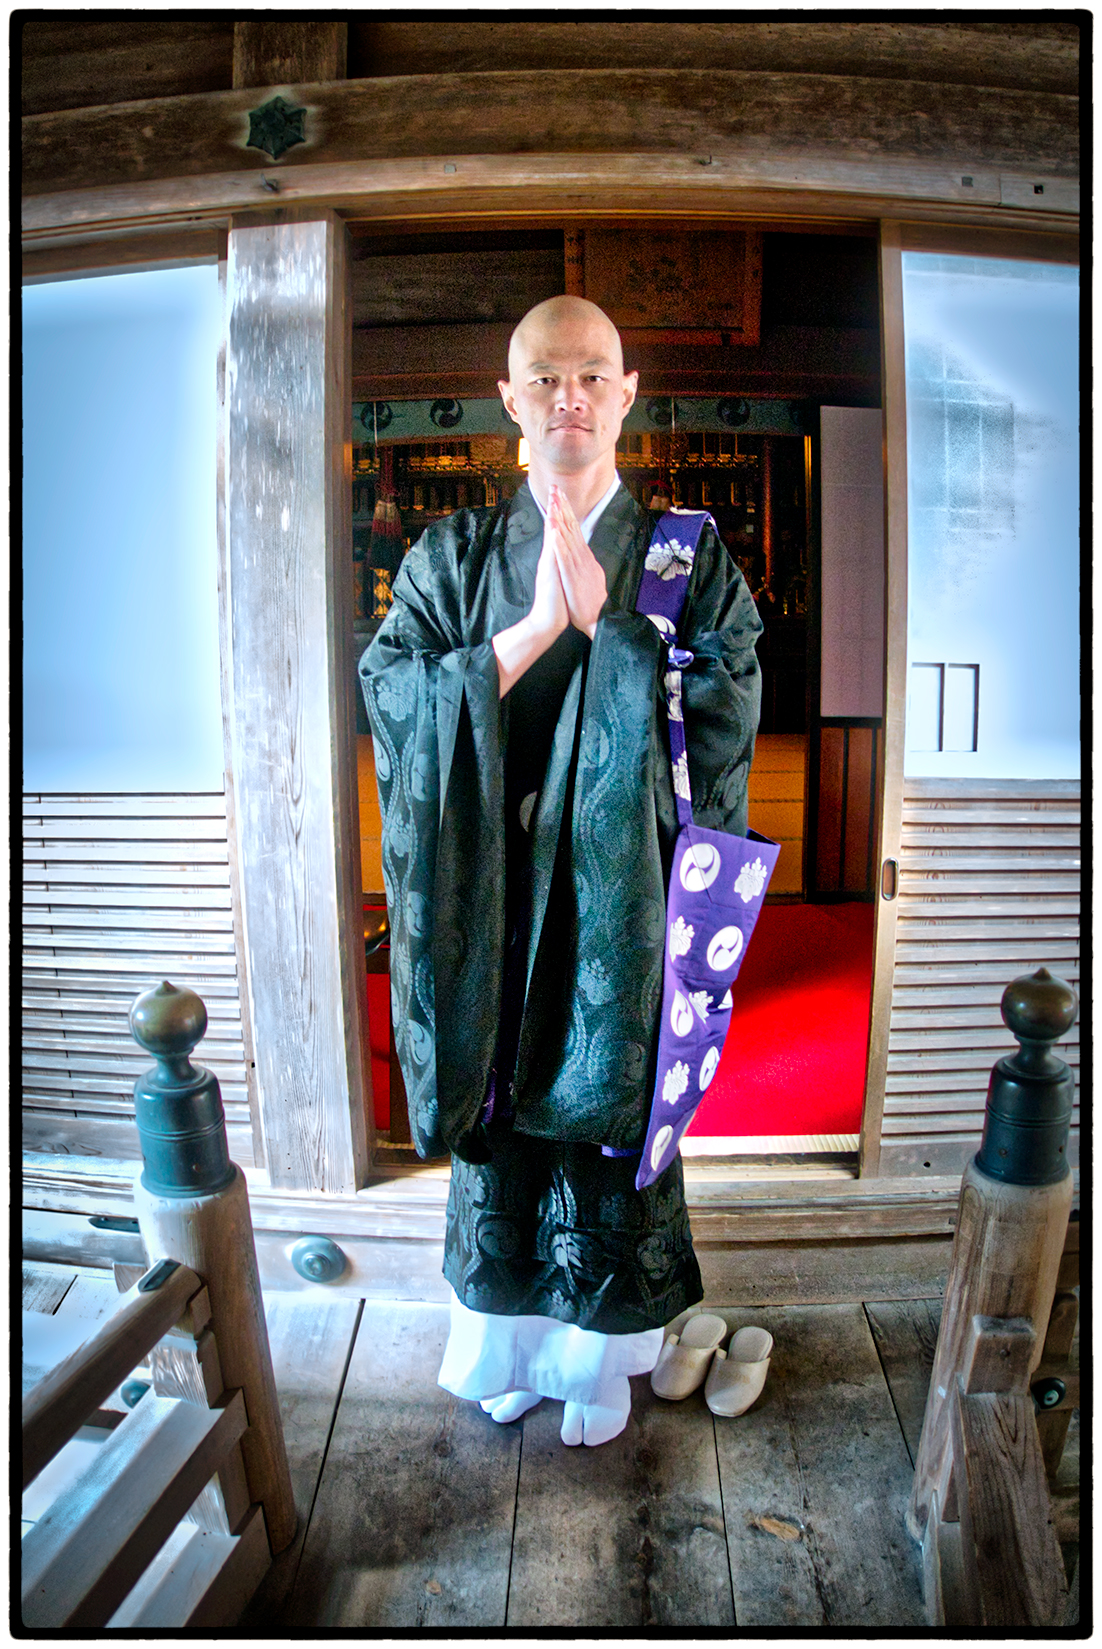 Monk, Buddhist Monastery at Mount Koya